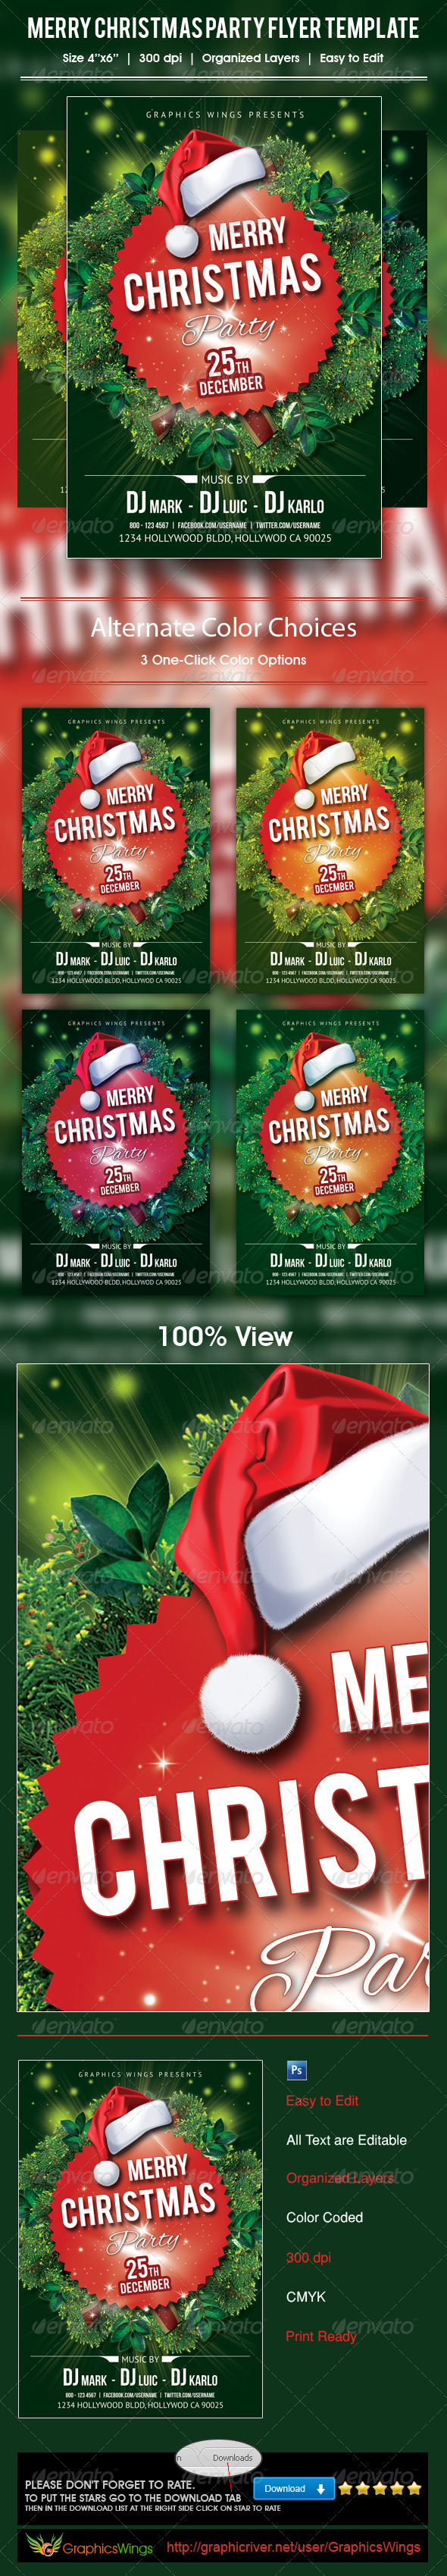 GraphicRiver Merry Christmas Party Flyer Template 6240147